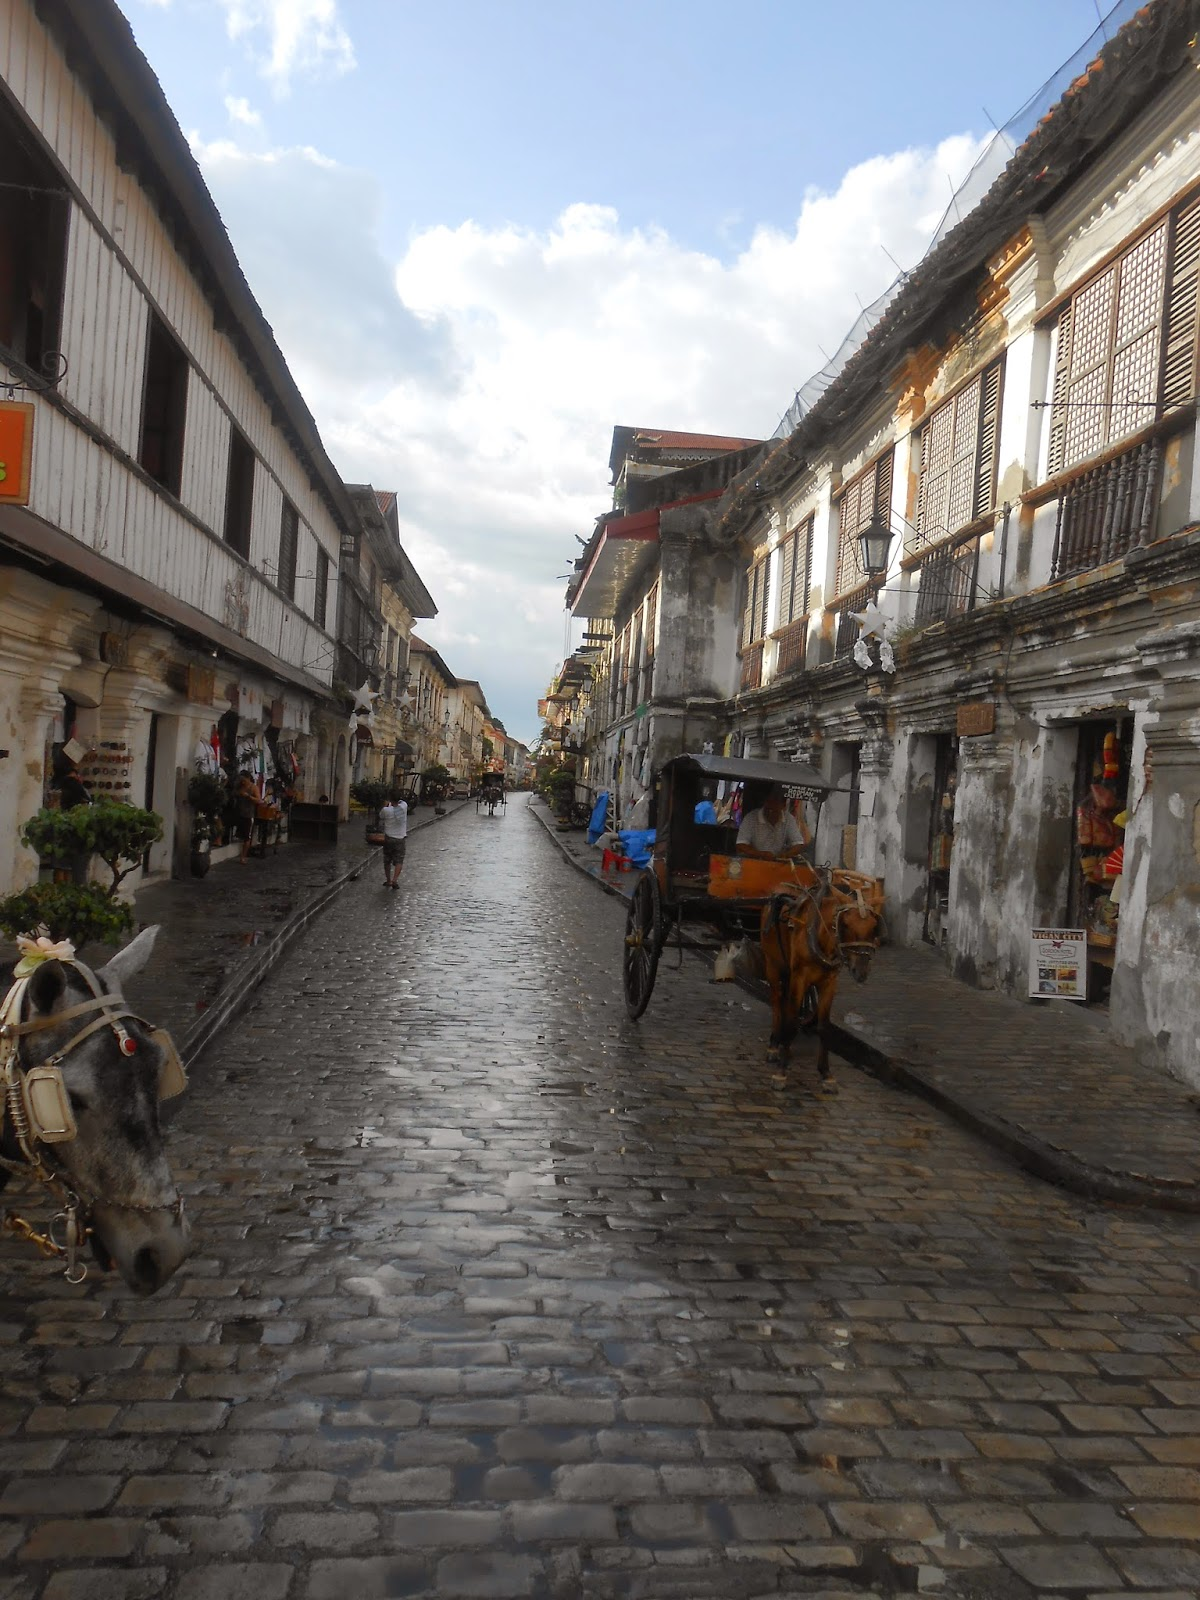 Must-see things in Vigan: Calle Crisologo